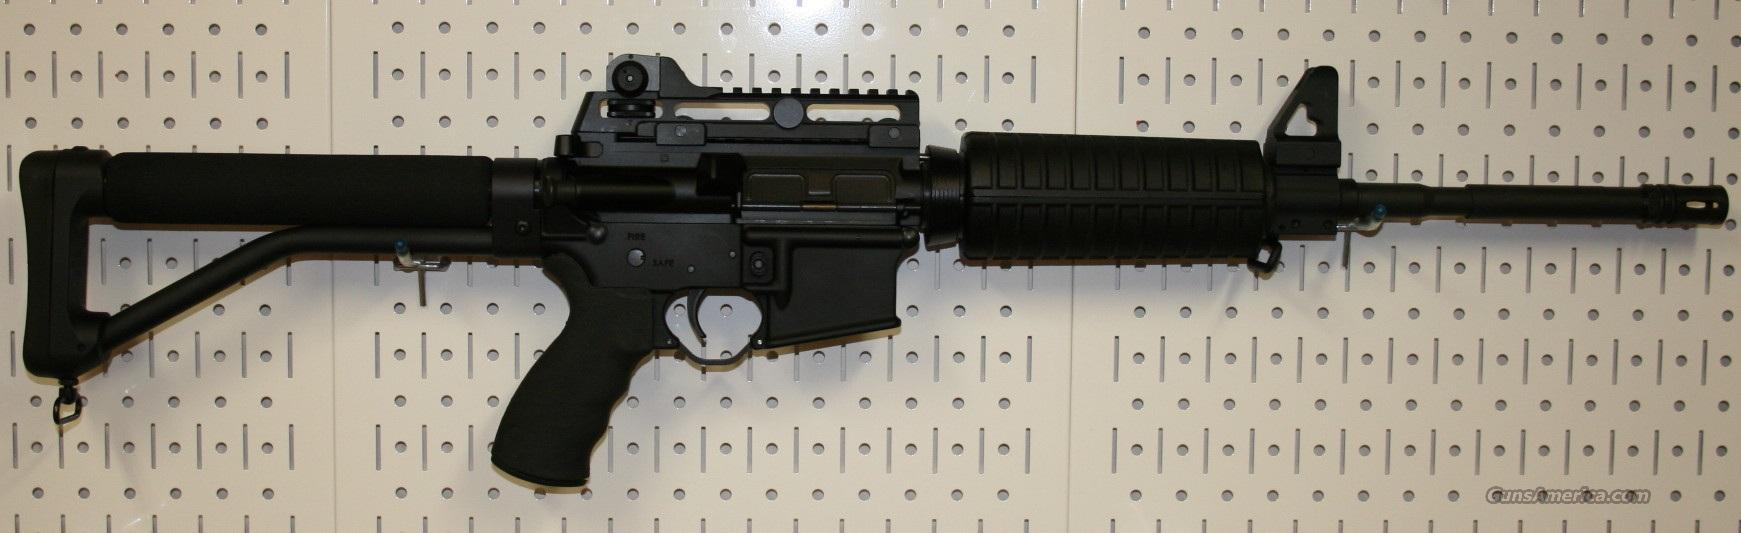 Rra Ar15 Entry Tactical W Tactical Carry Handle For Sale